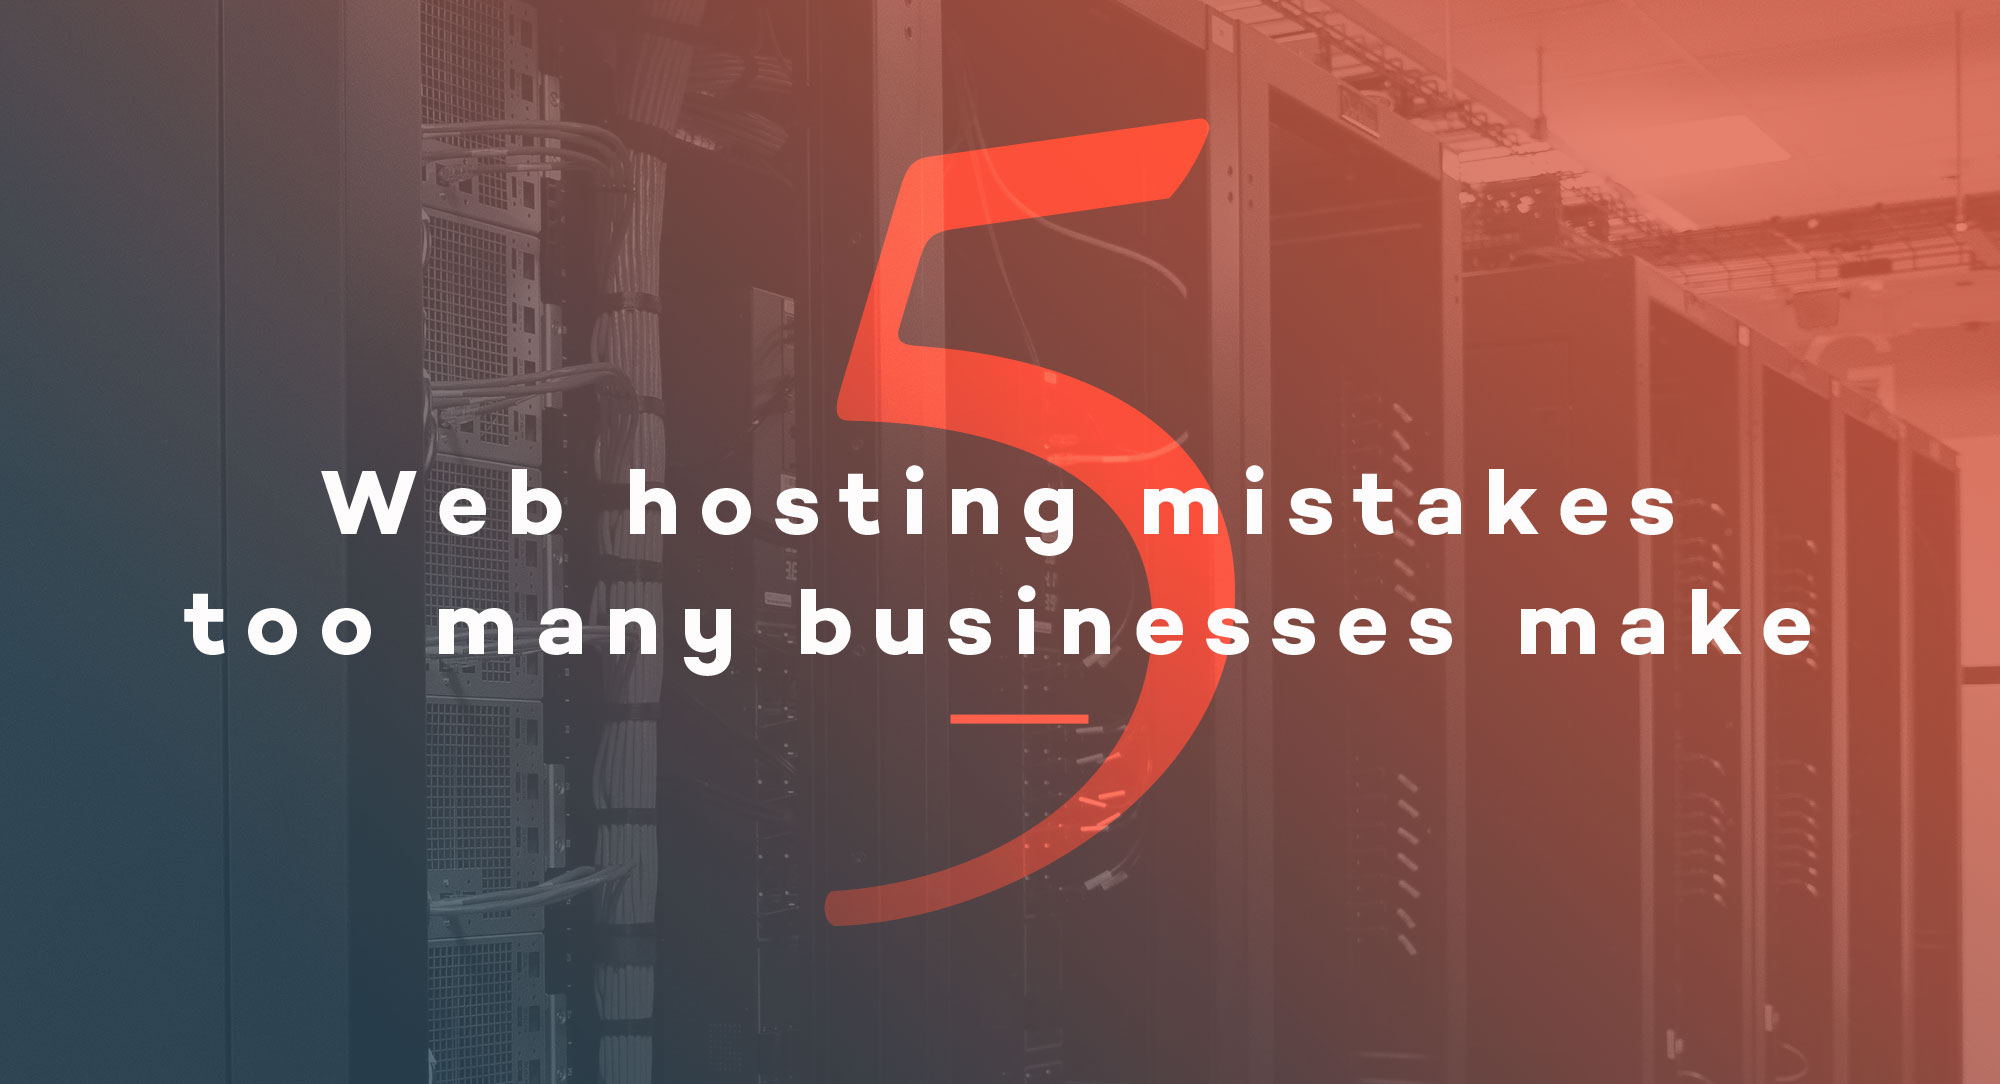 5 Web hosting mistakes too many businesses make